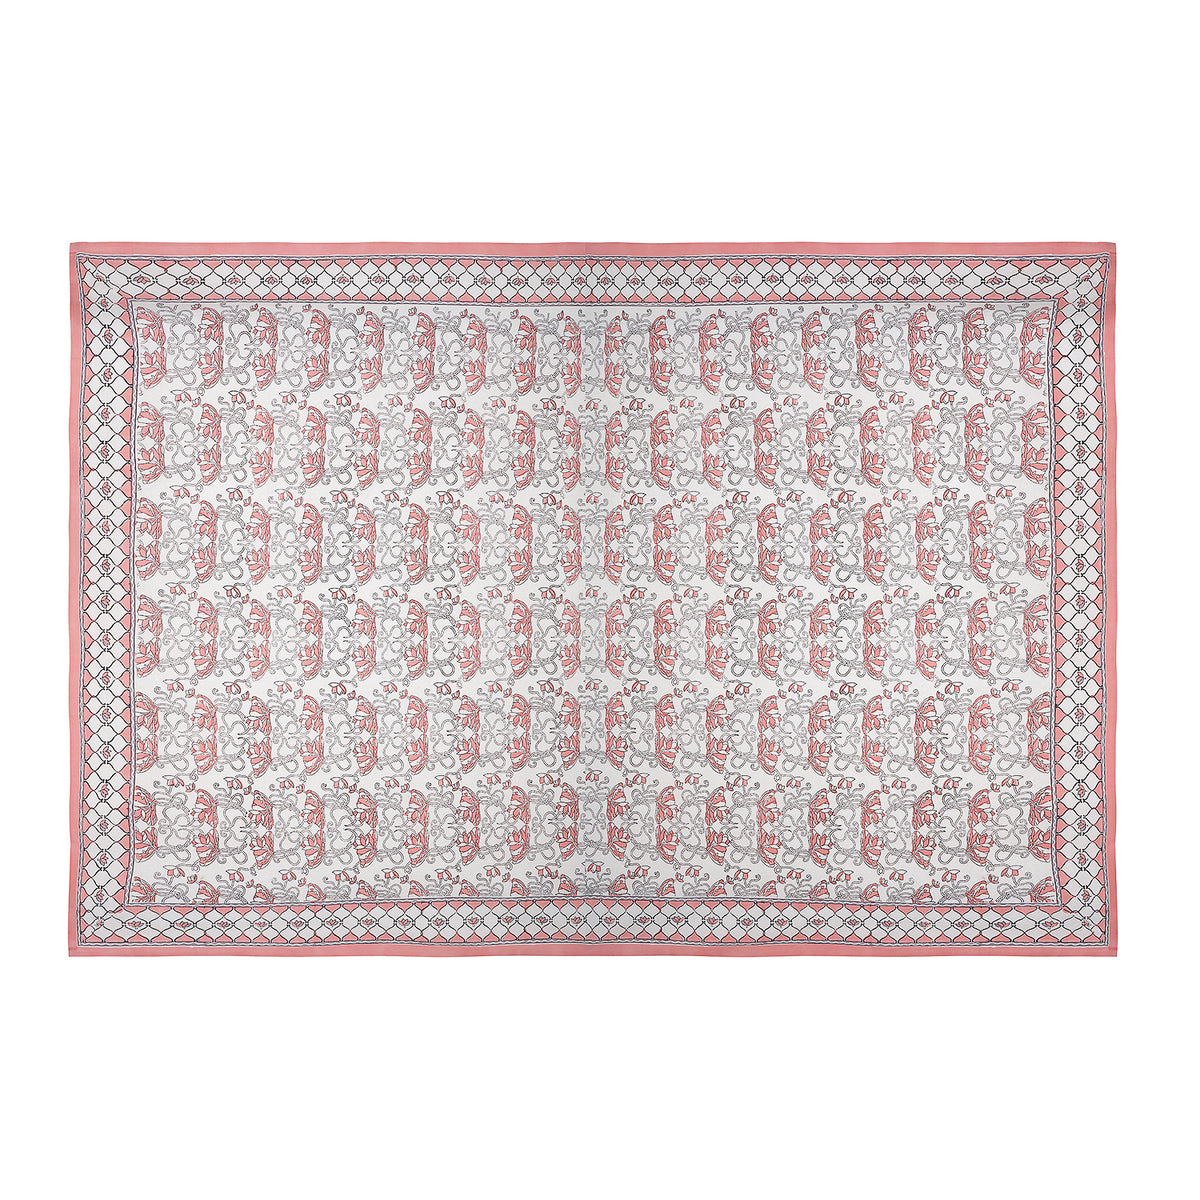 TEMARA TABLECLOTH